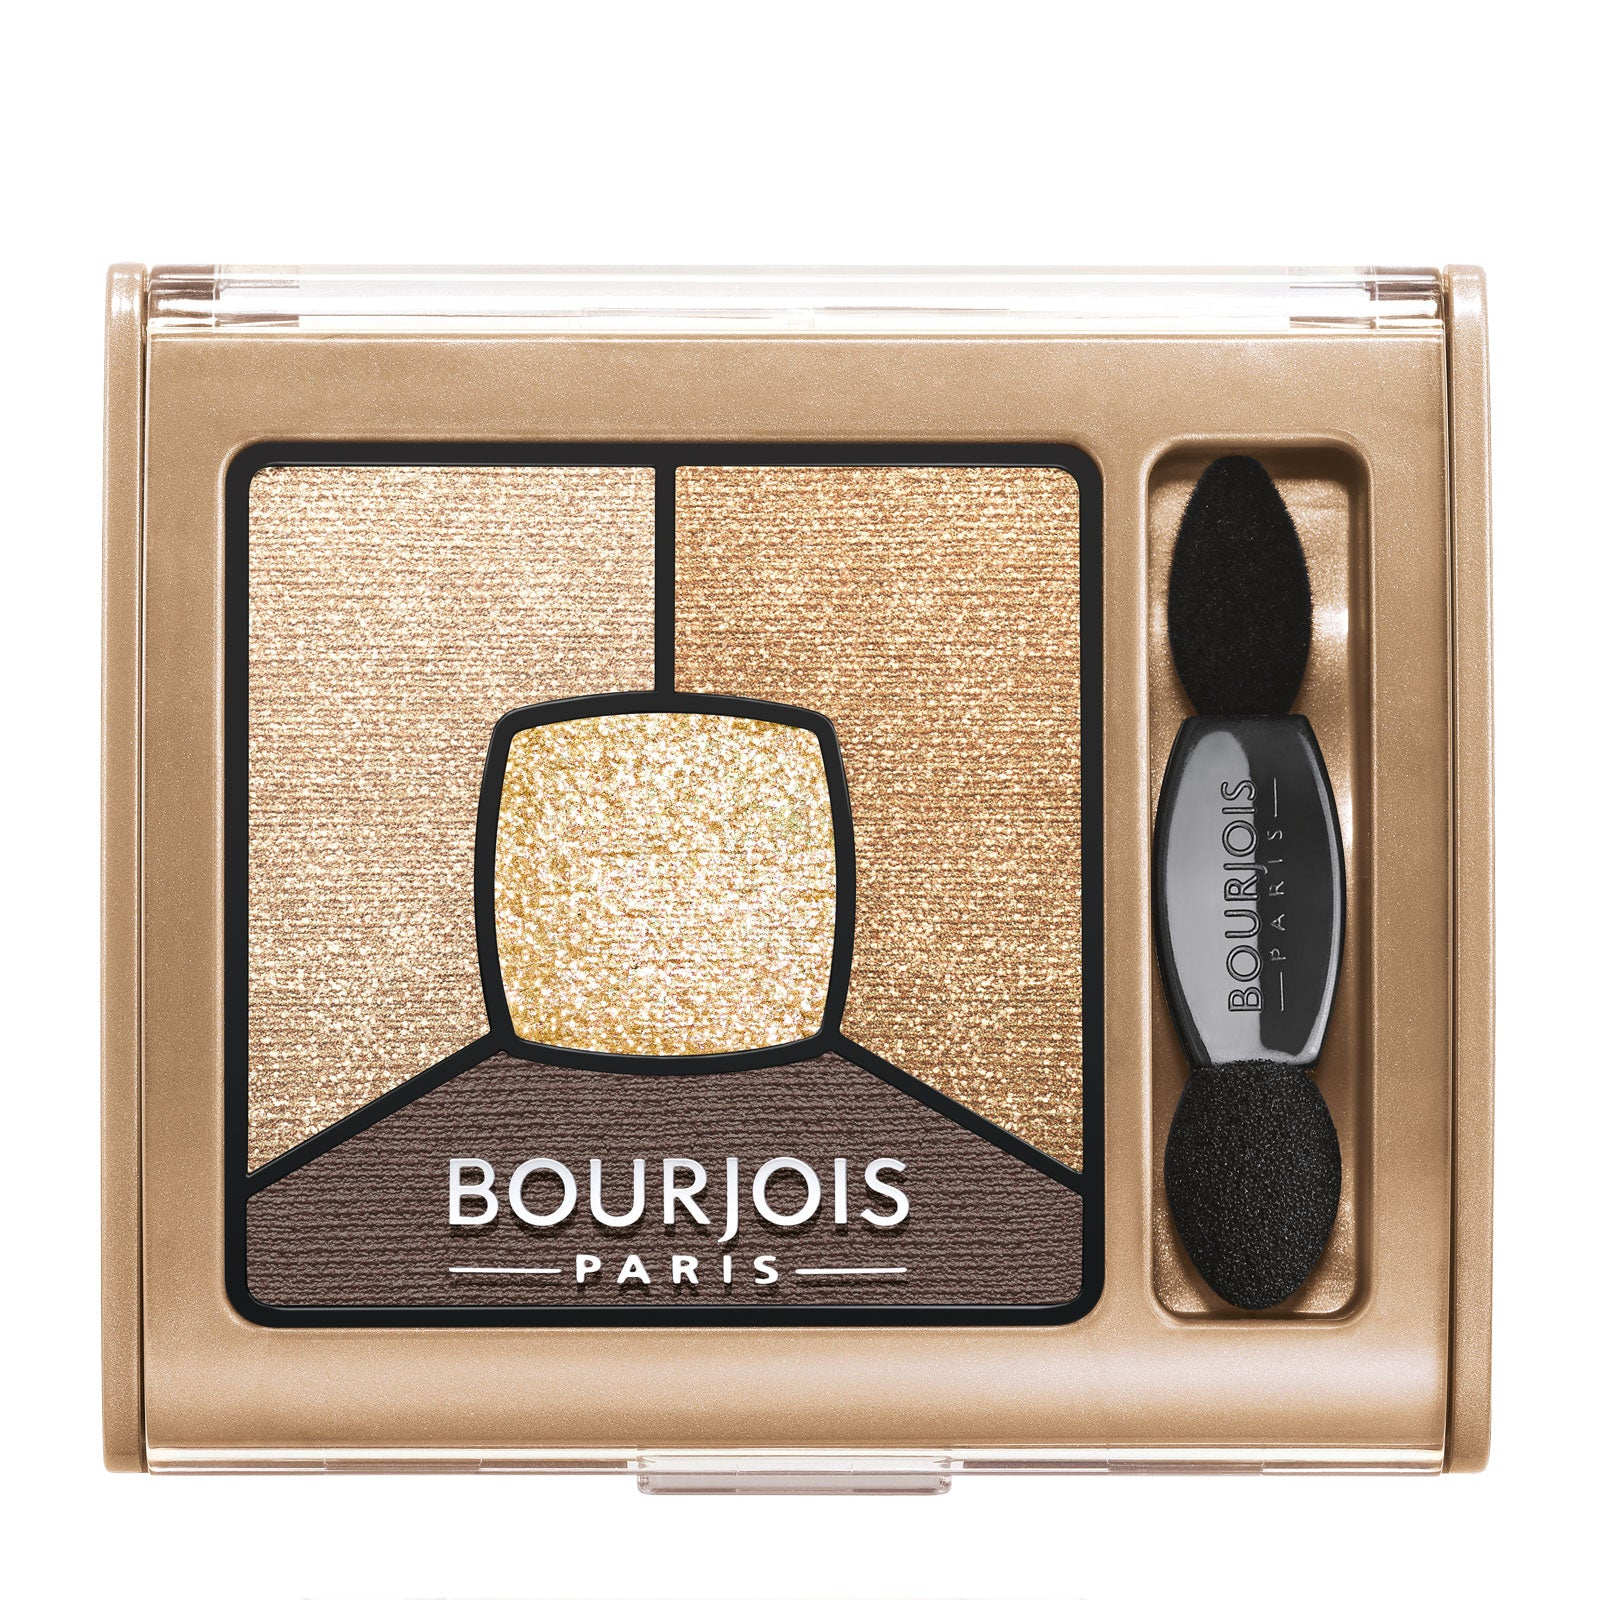 Bourjois Glitter Smokey Stories Eyeshadow Palette 3g